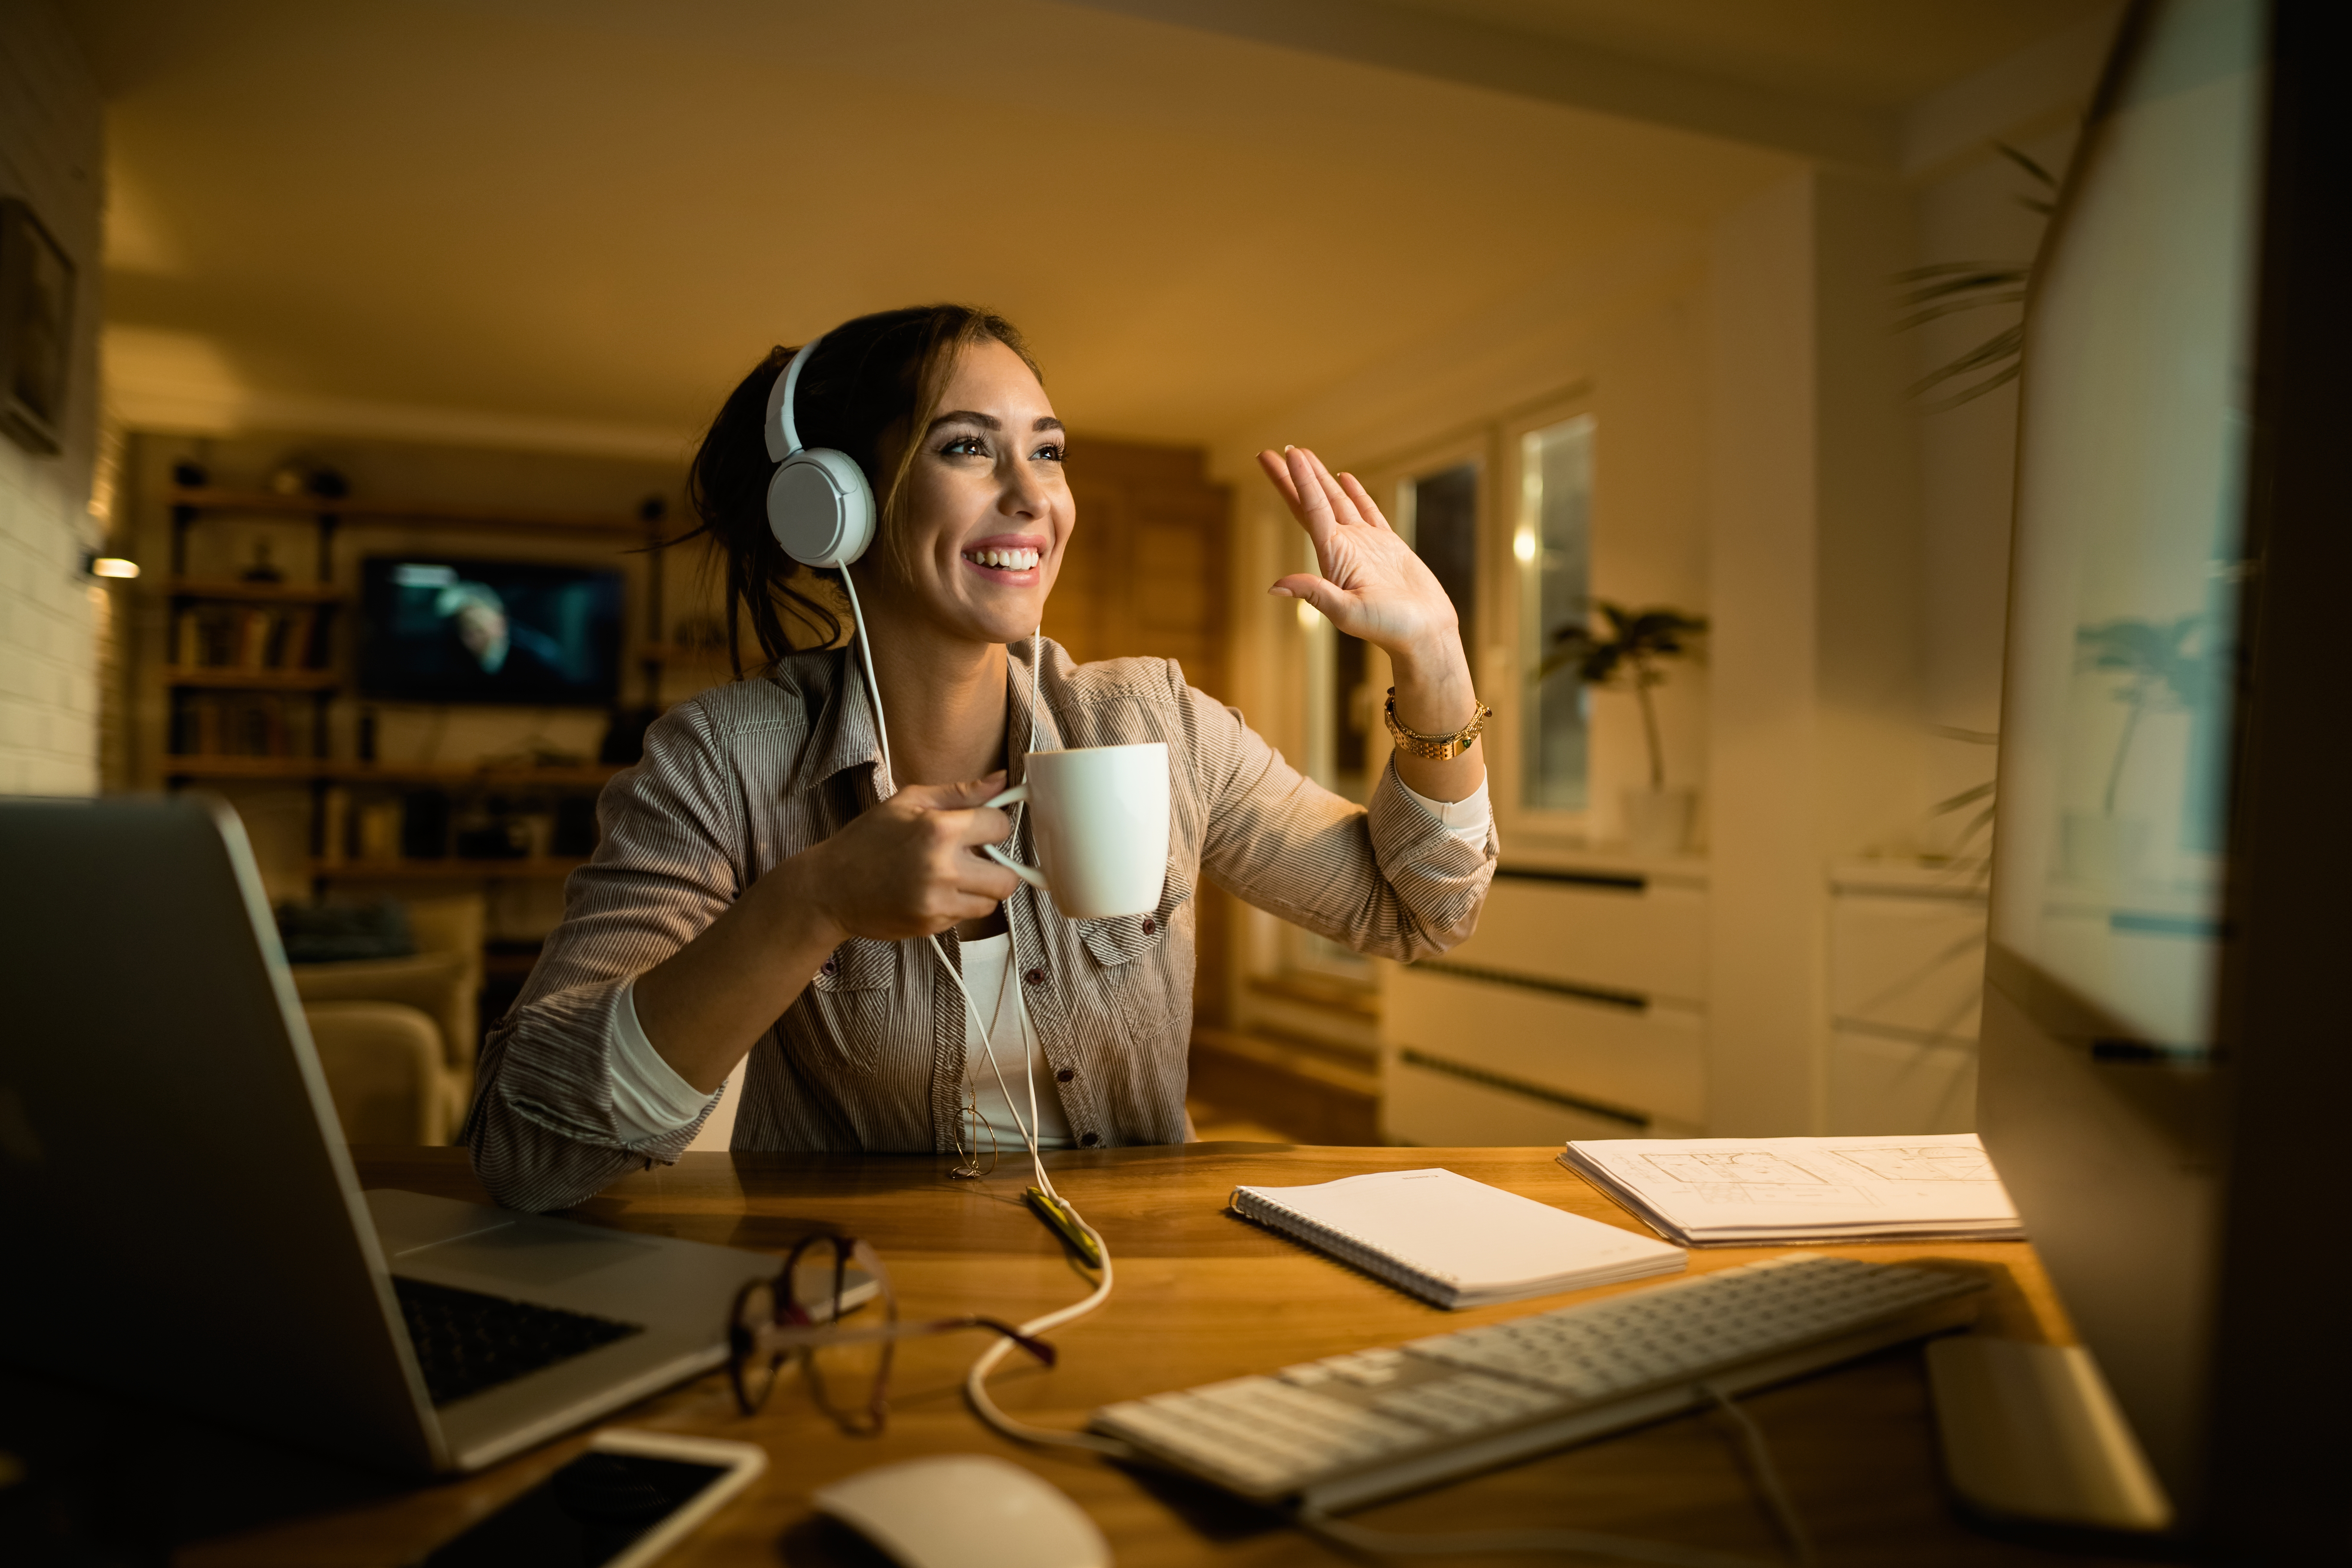 Happy woman with headphones making video call over computer at night.